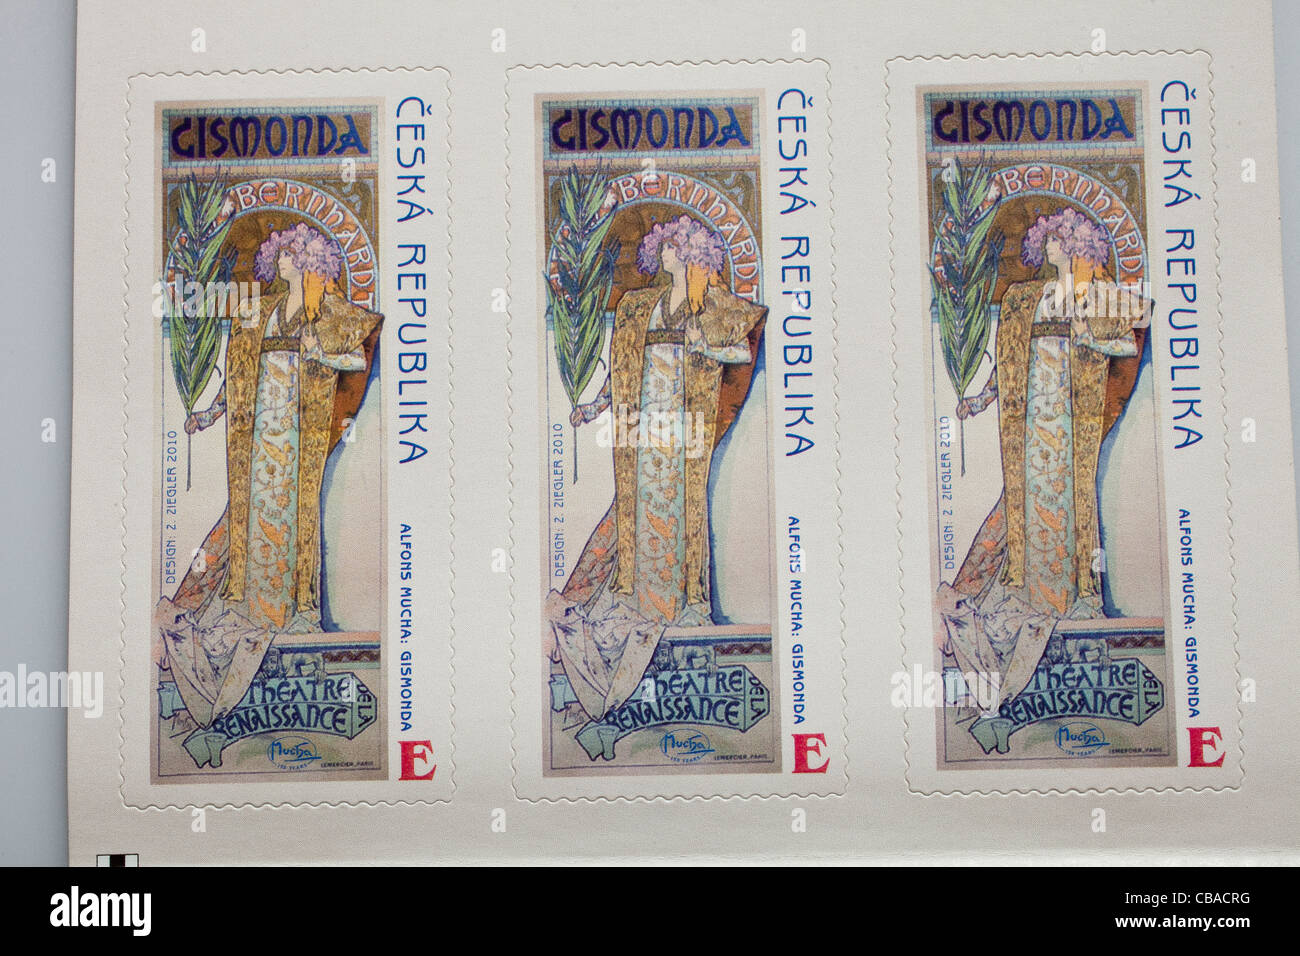 Czech E (Europe) denomination postage stamps with Gismonda motive by ...